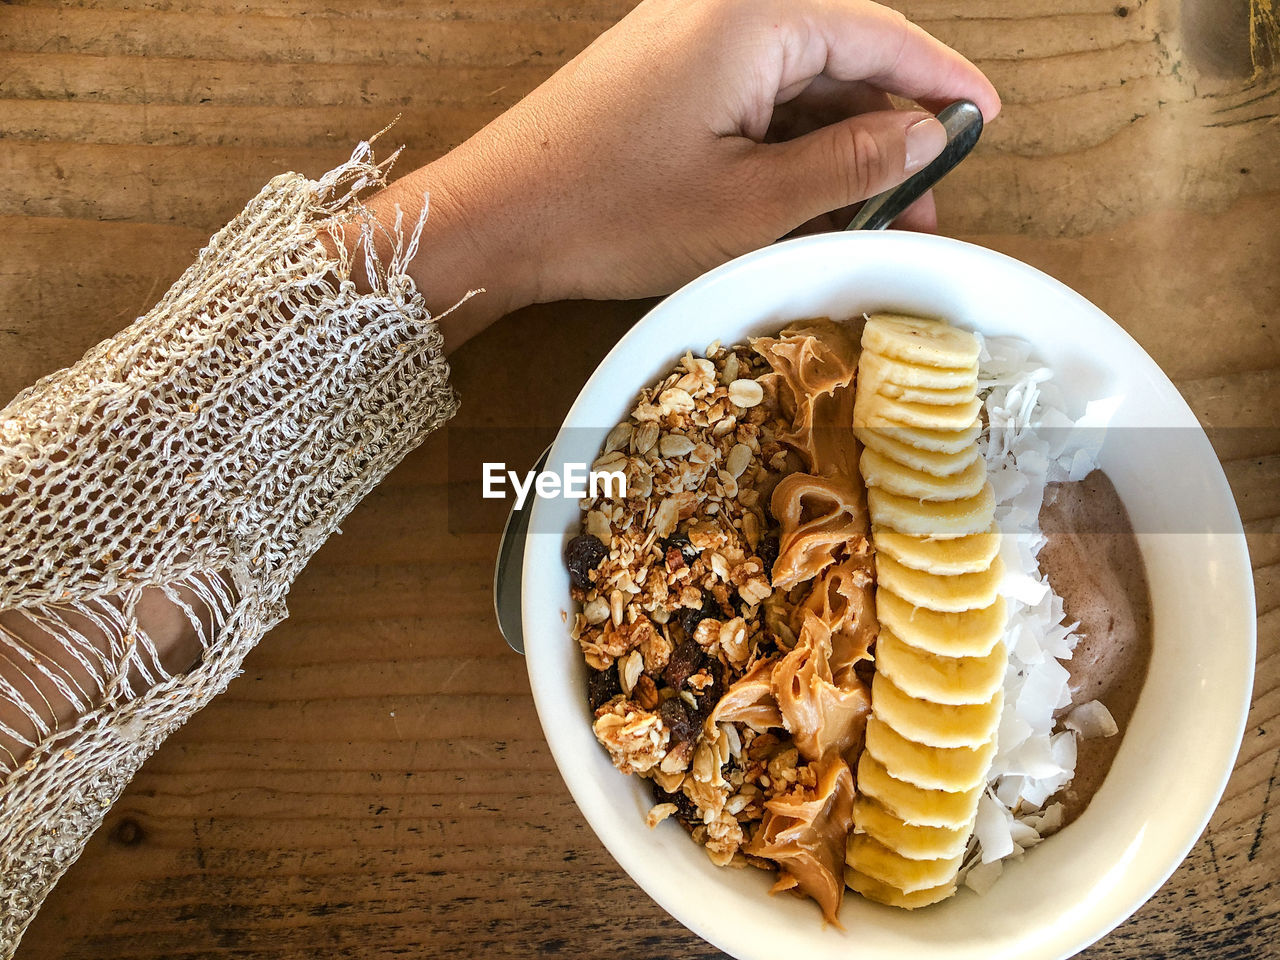 human hand, hand, food, food and drink, one person, human body part, freshness, real people, table, unrecognizable person, lifestyles, indoors, holding, high angle view, adult, women, sweet food, ready-to-eat, finger, temptation, breakfast